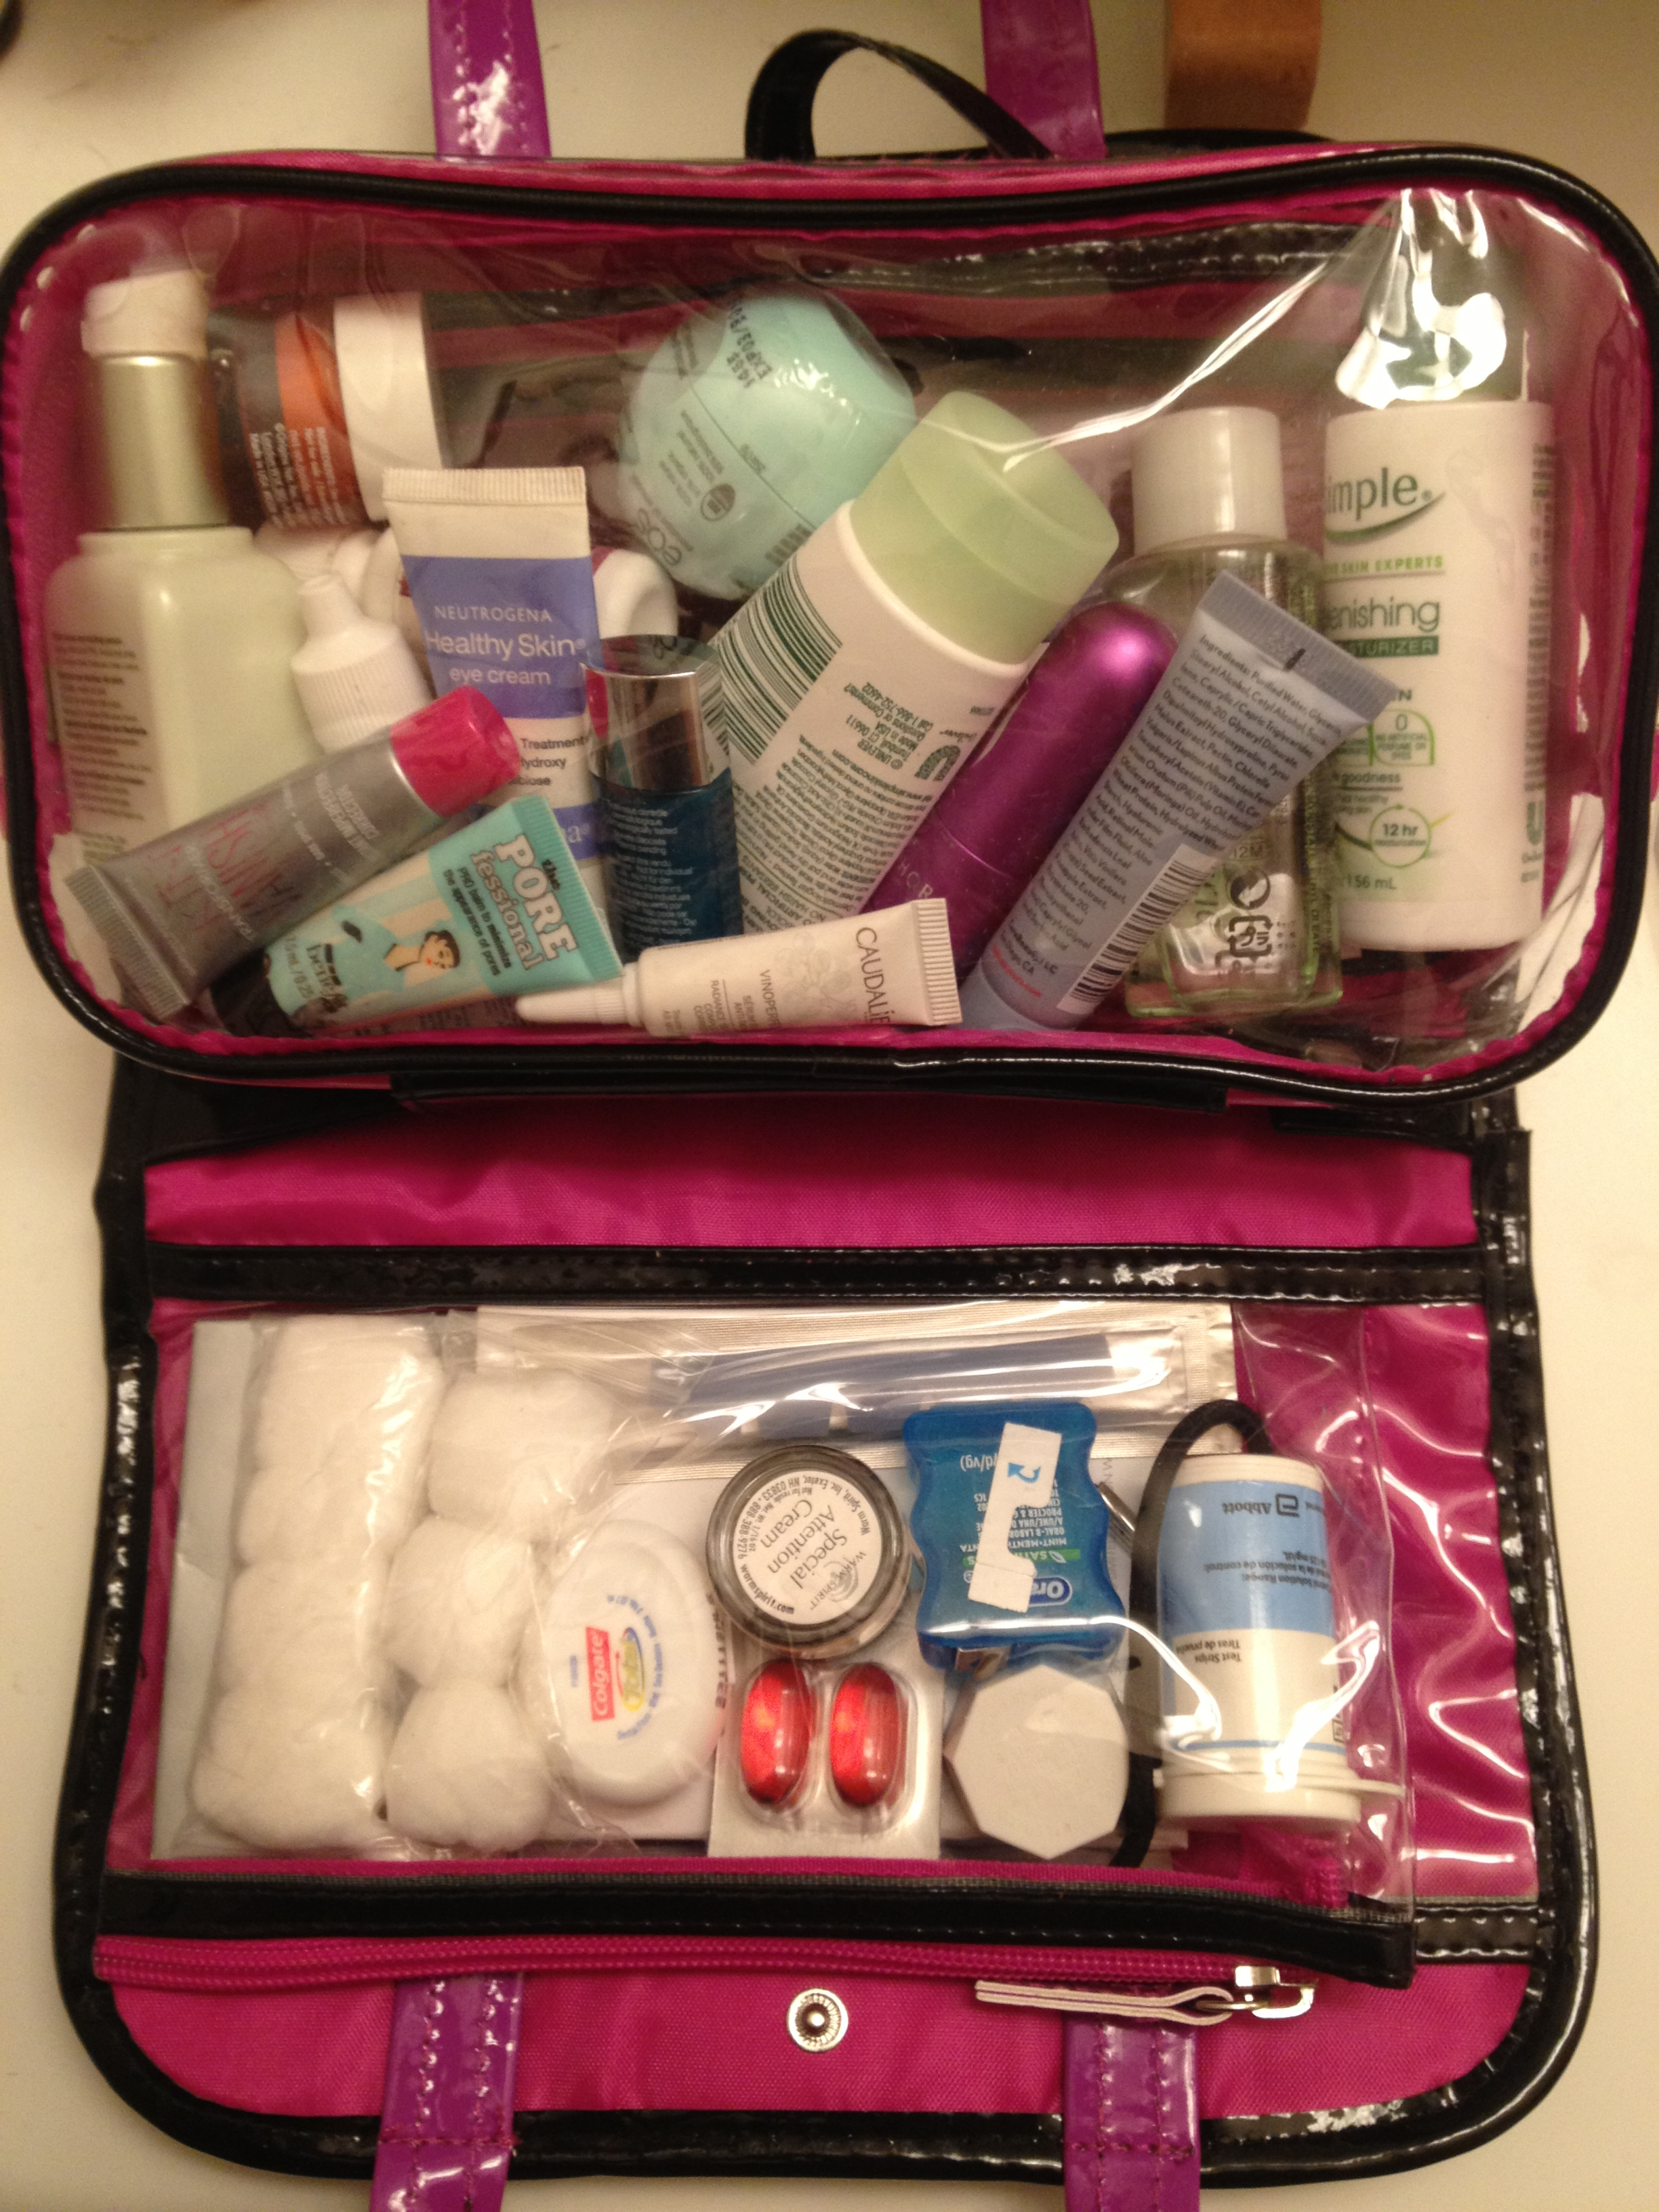 My travel kit includes my 3-1-1 bag which is removable from the rest of my toiletries bag. (Photo credit Wendie Burbridge).